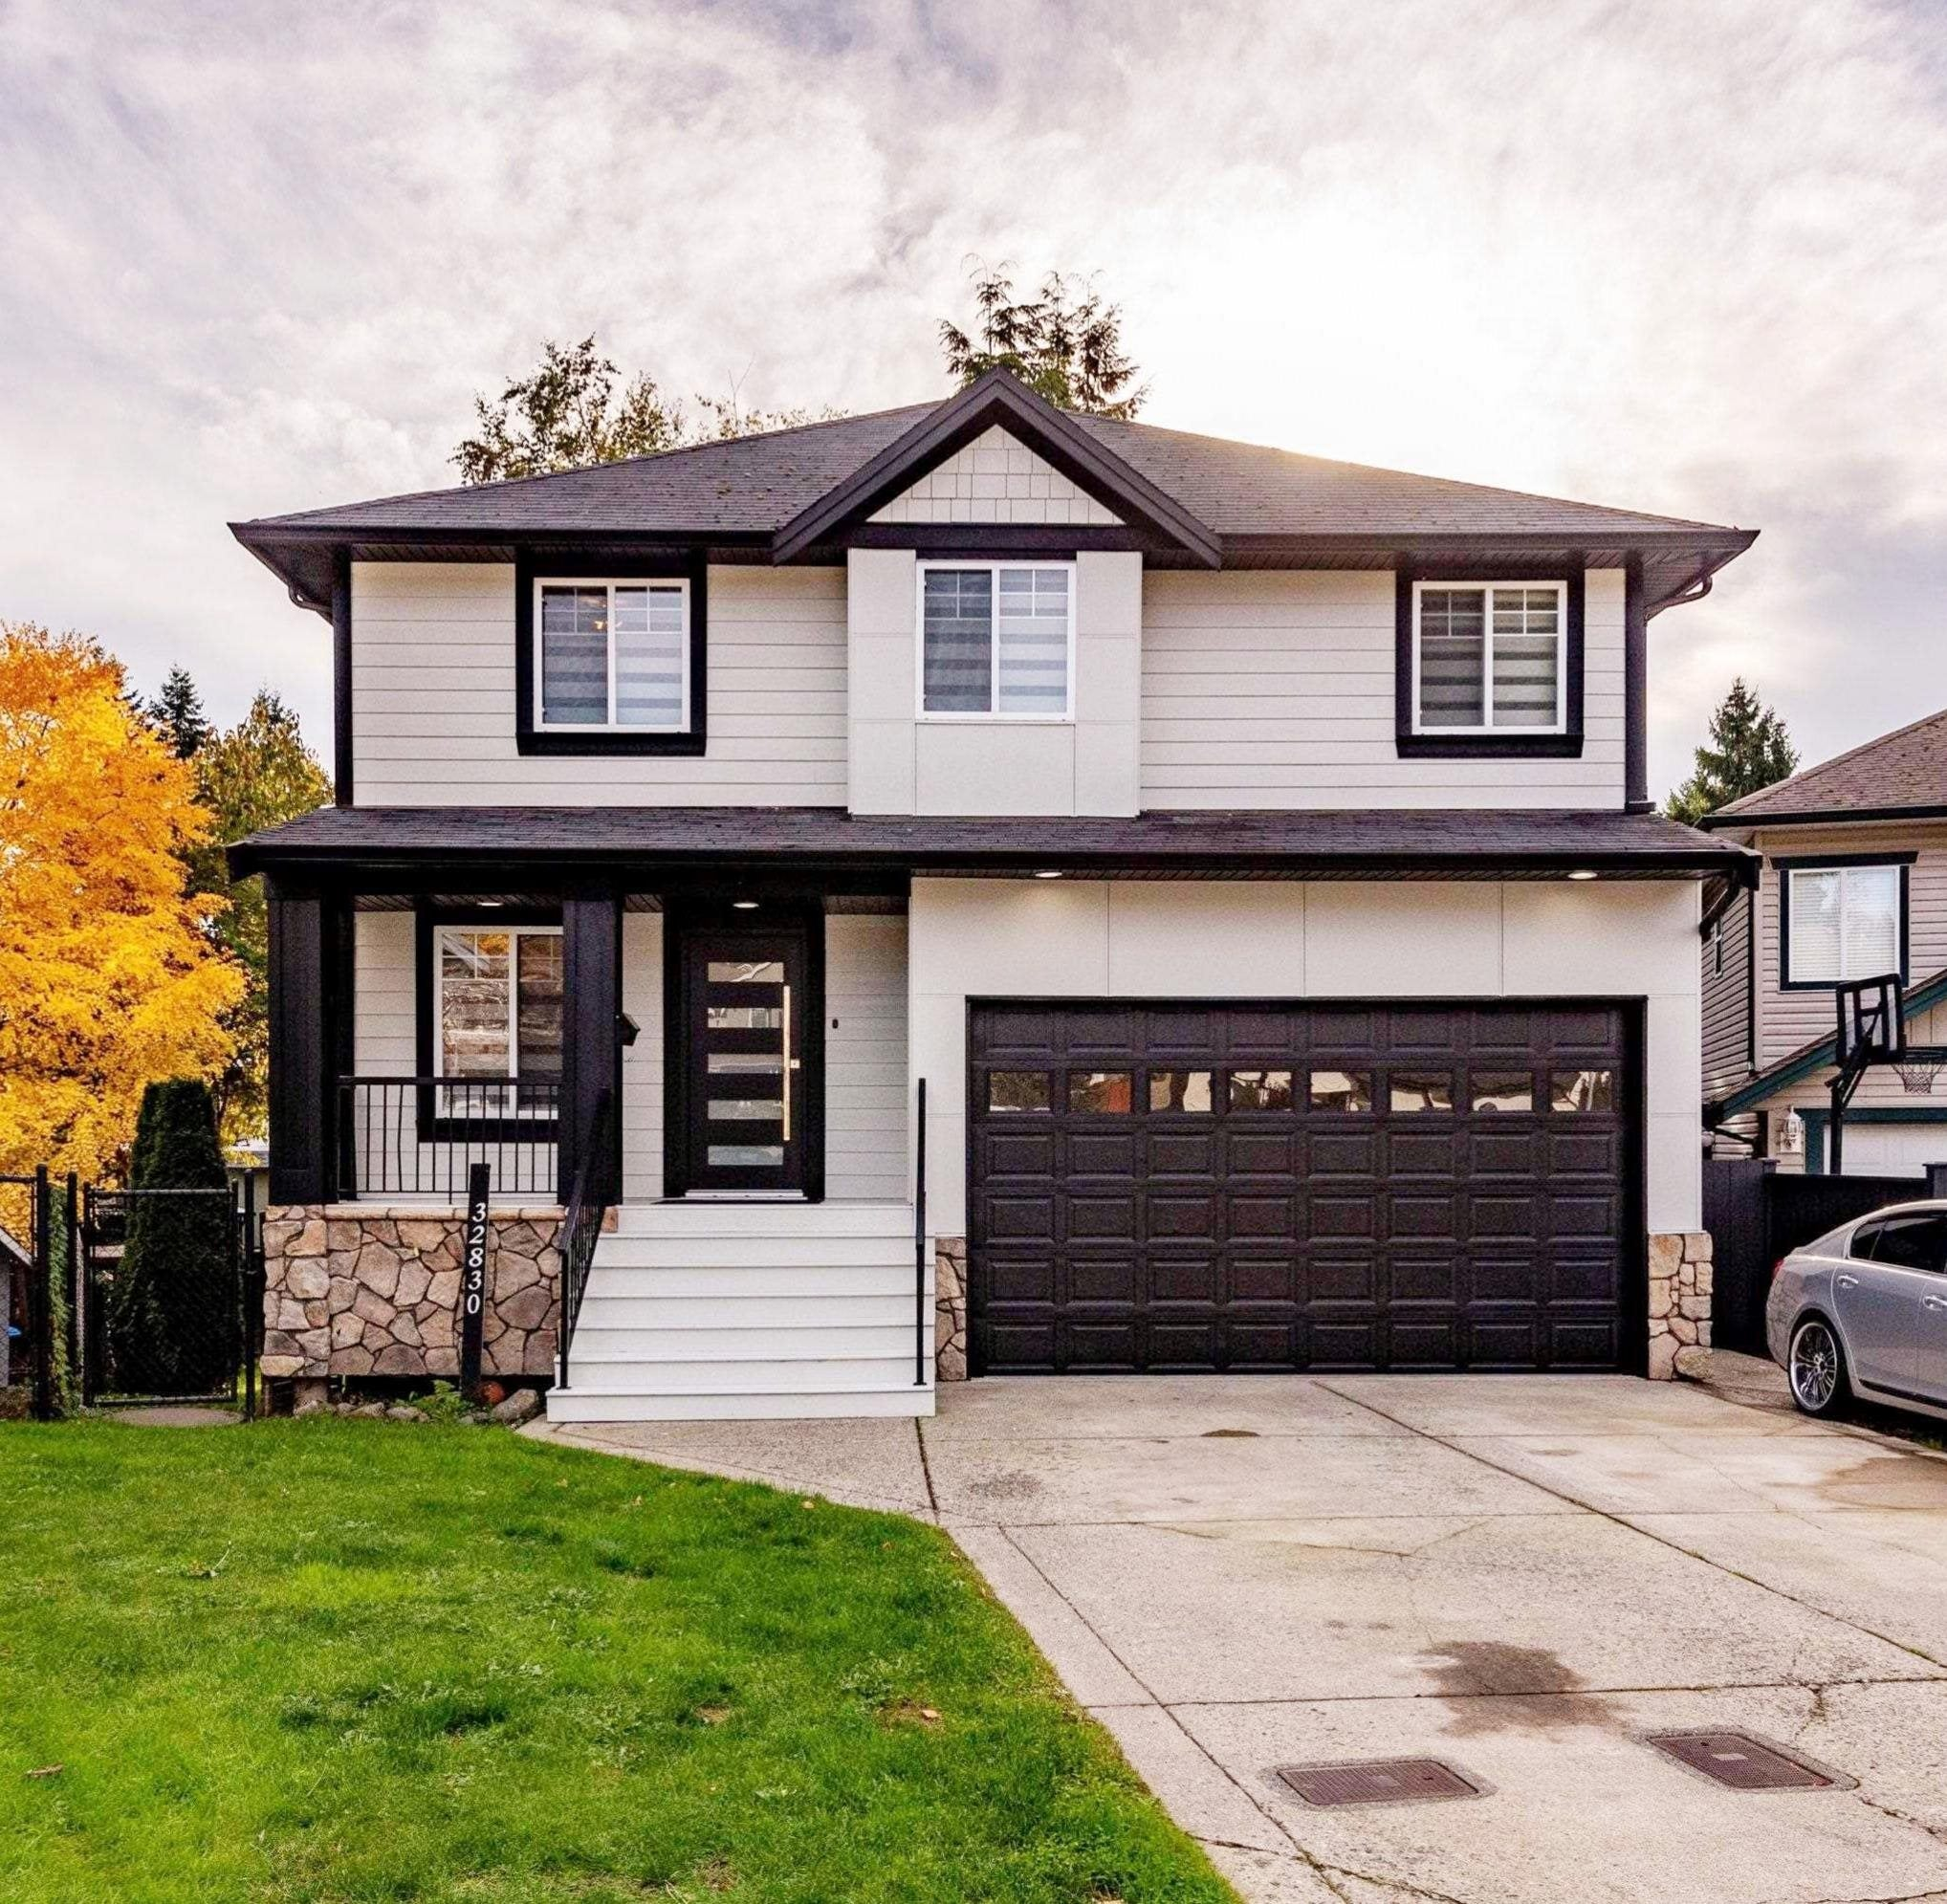 32830 ARBUTUS AVENUE - Mission BC House/Single Family for sale, 7 Bedrooms (R2626809) - #1